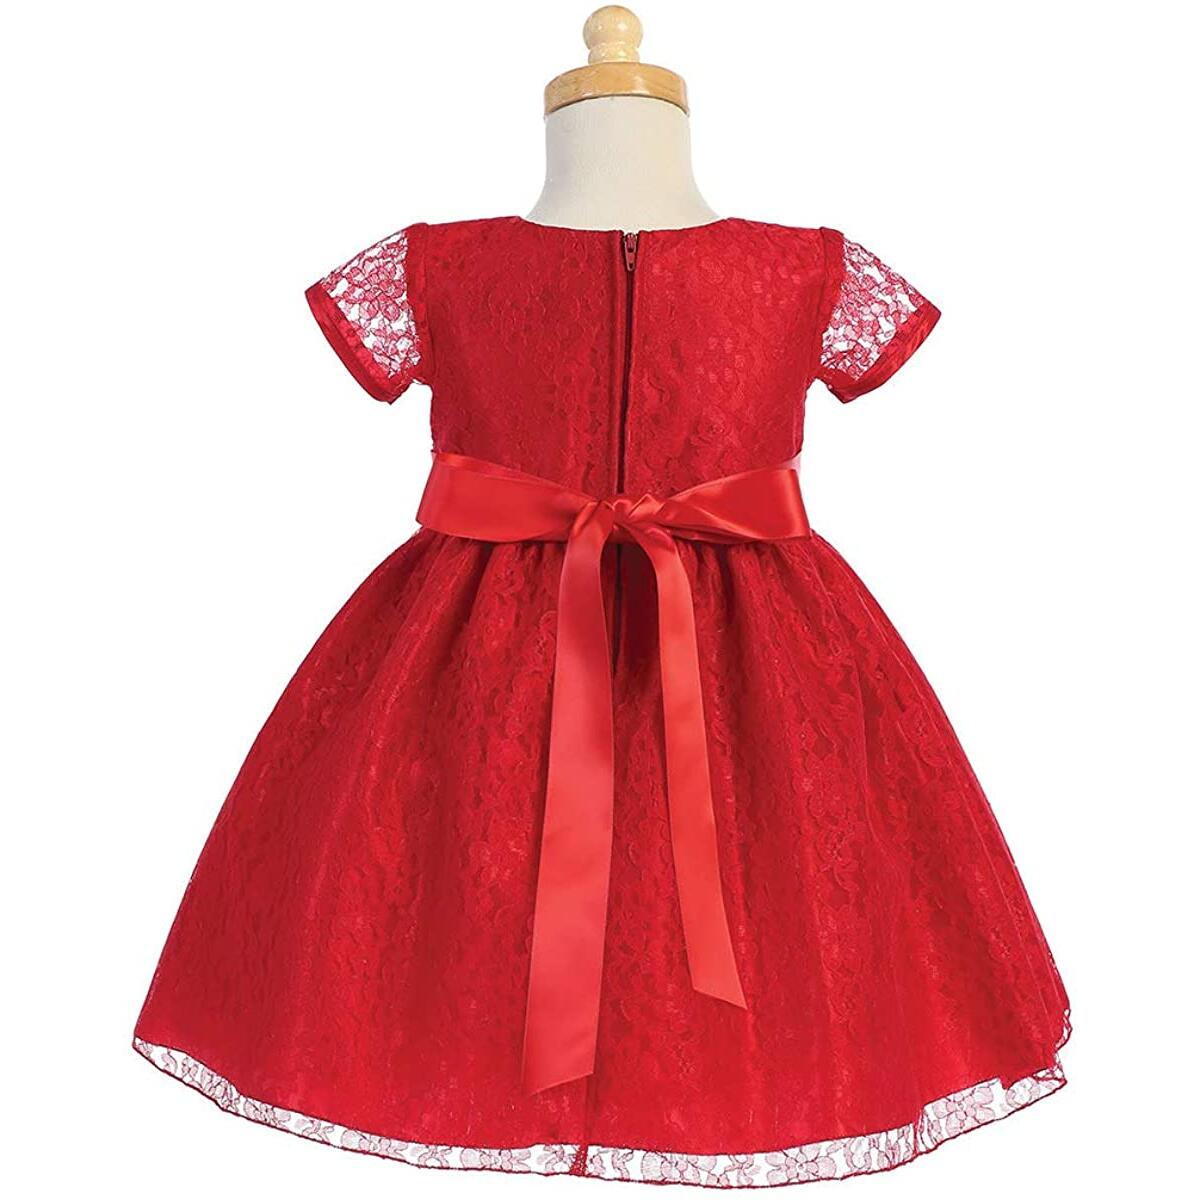 Pink Princess Christmas Dresses for Girls - Red Baby Toddler Outfits - Made in USA